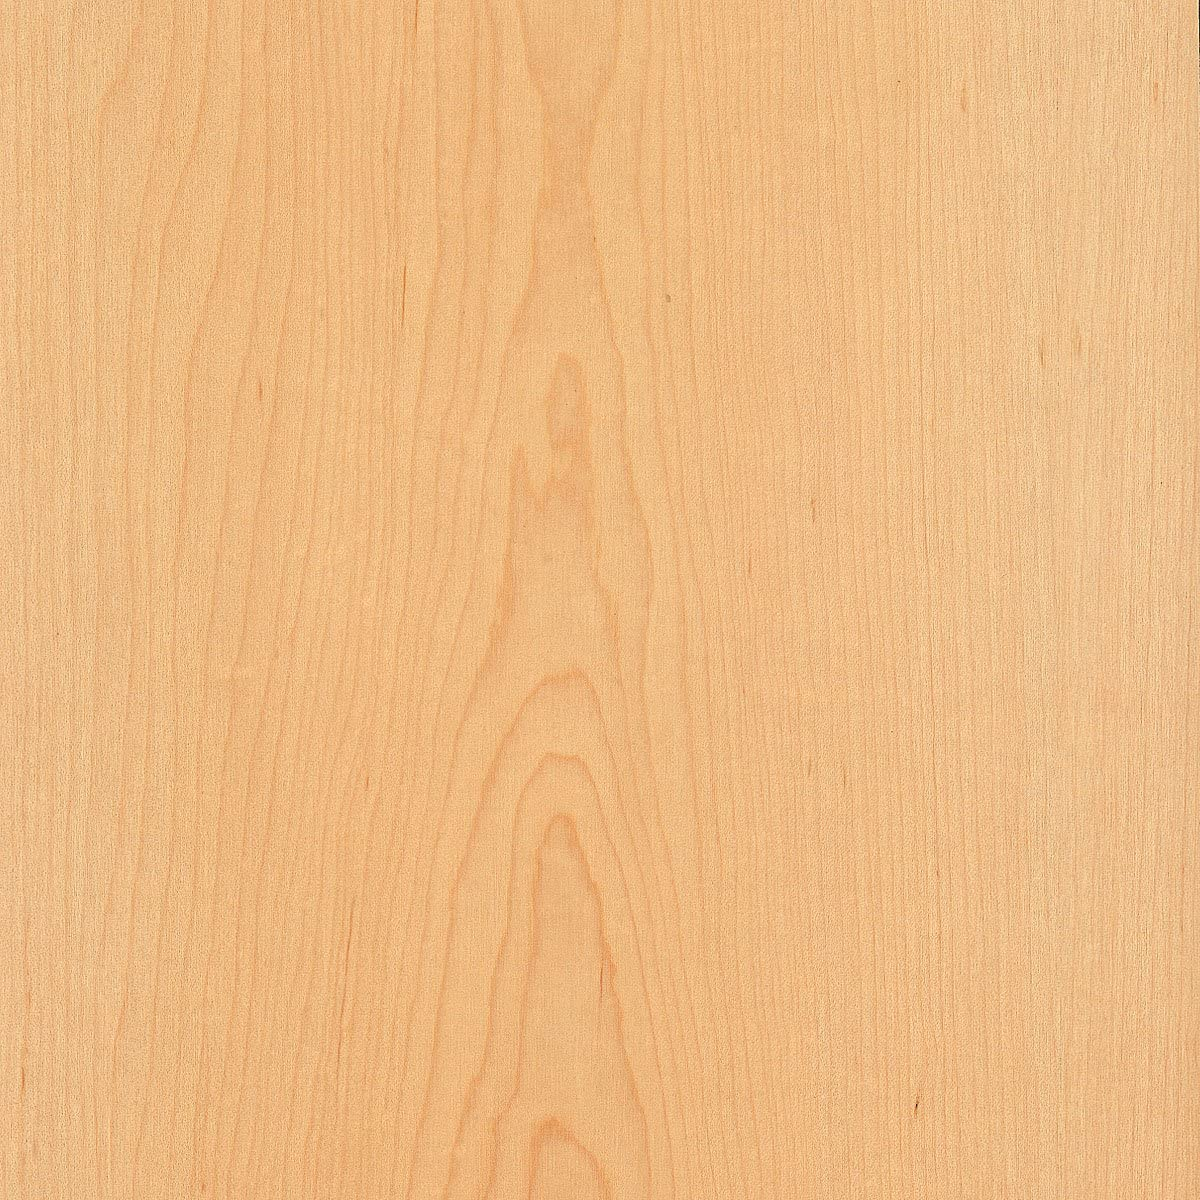 48 x 96 in Laminate Sheet Maple Wood Look Countertop Kitchen Bathroom Surface